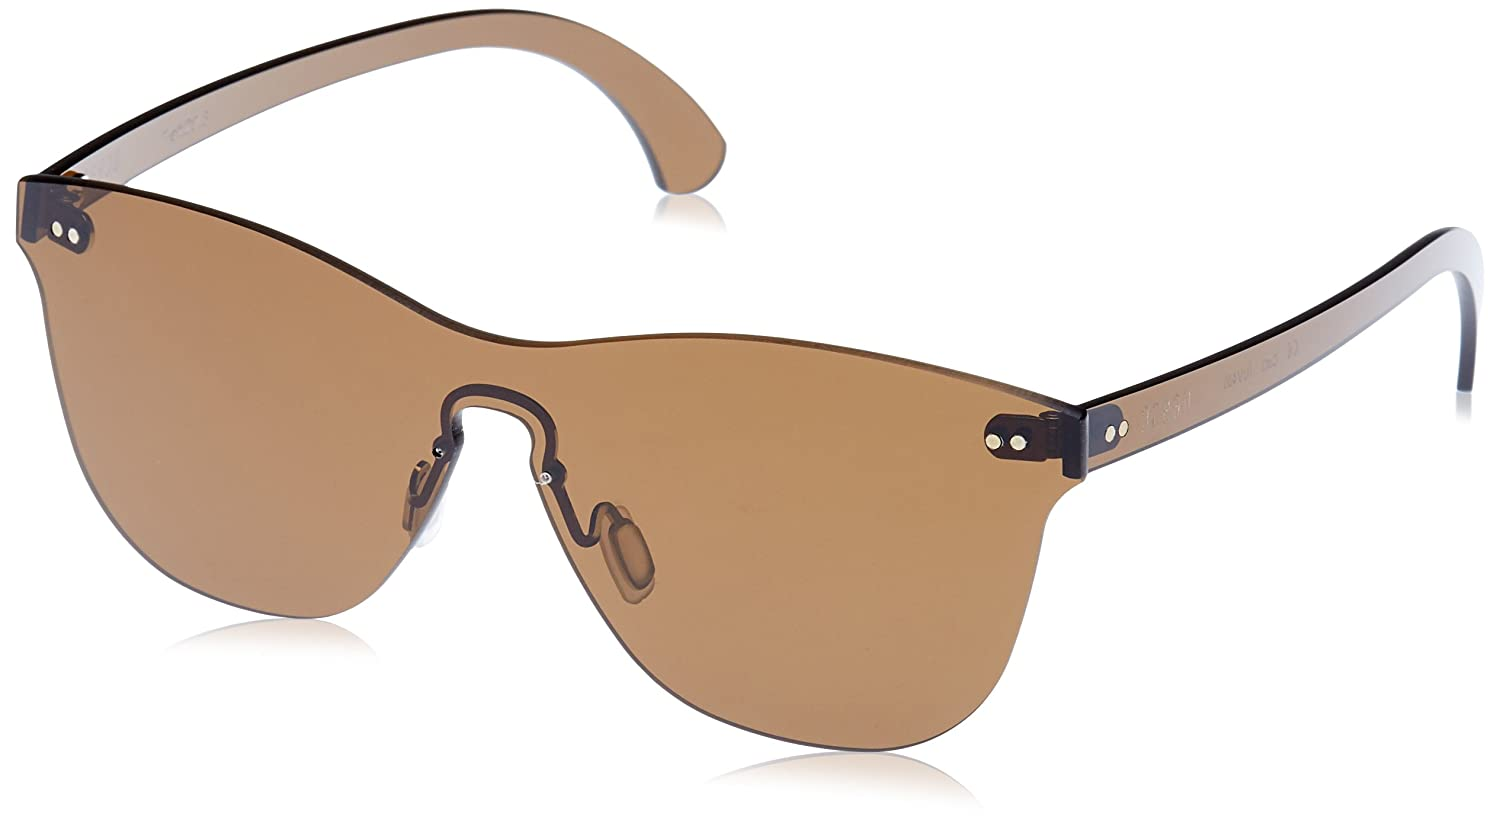 Ocean Eye Gafas de Sol, (Marrone), 58 Unisex Adulto